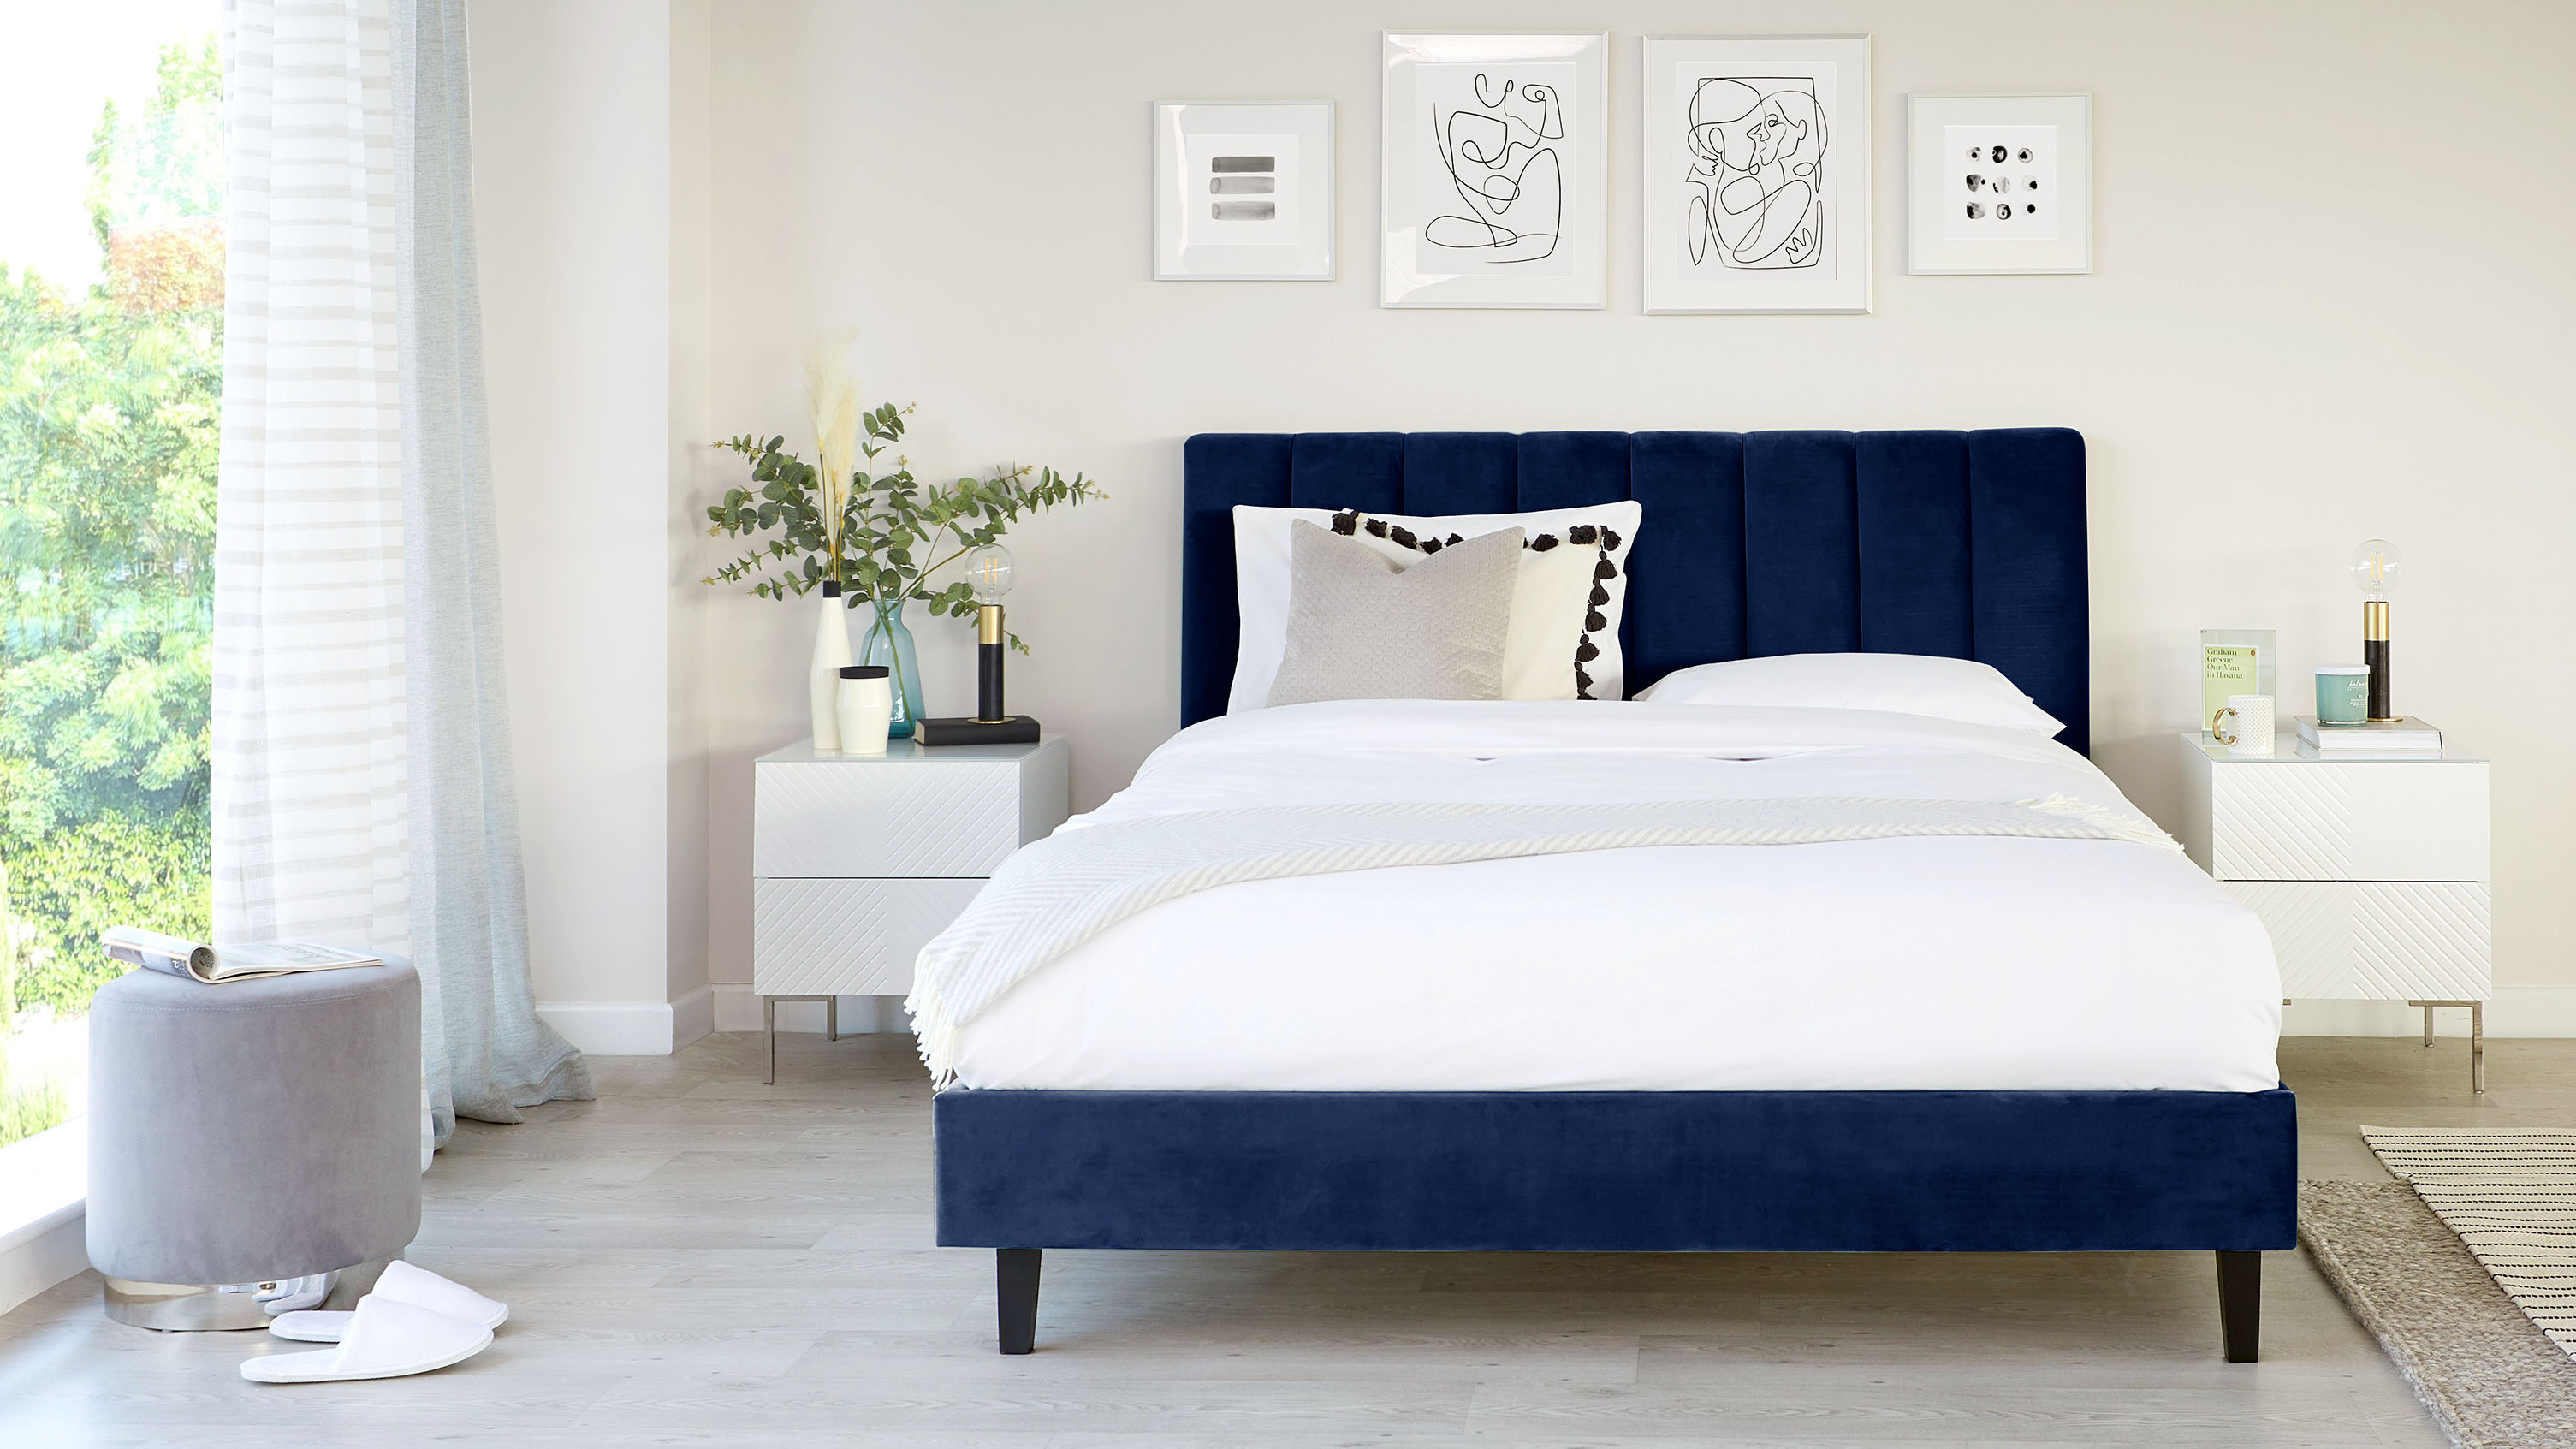 Give your bedroom a new look for less